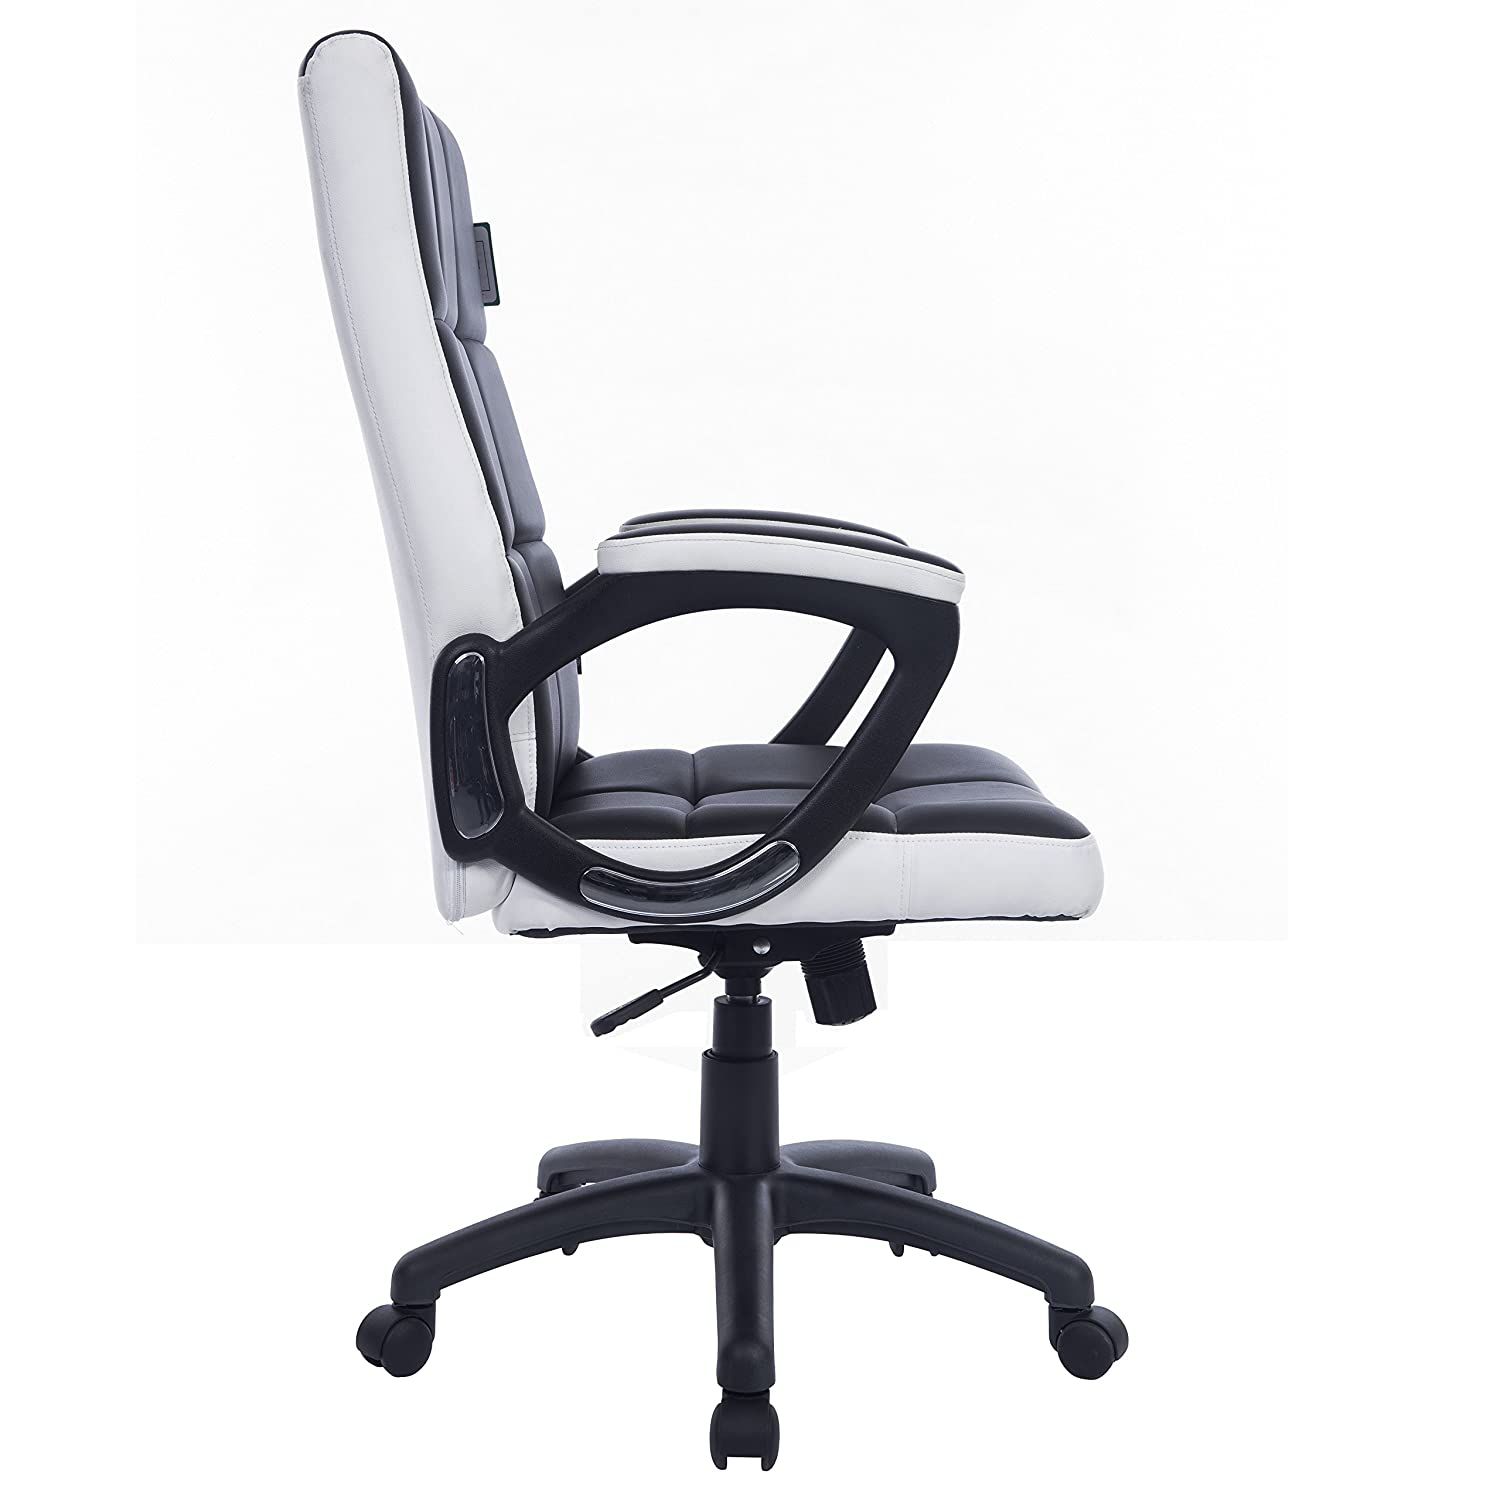 People sitting in waffle chair - Cherry Tree Furniture Waffle Contrasting Panels High Back Pu Leather Swivel Executive Office Chair In 2 Colours Black White Amazon Co Uk Office